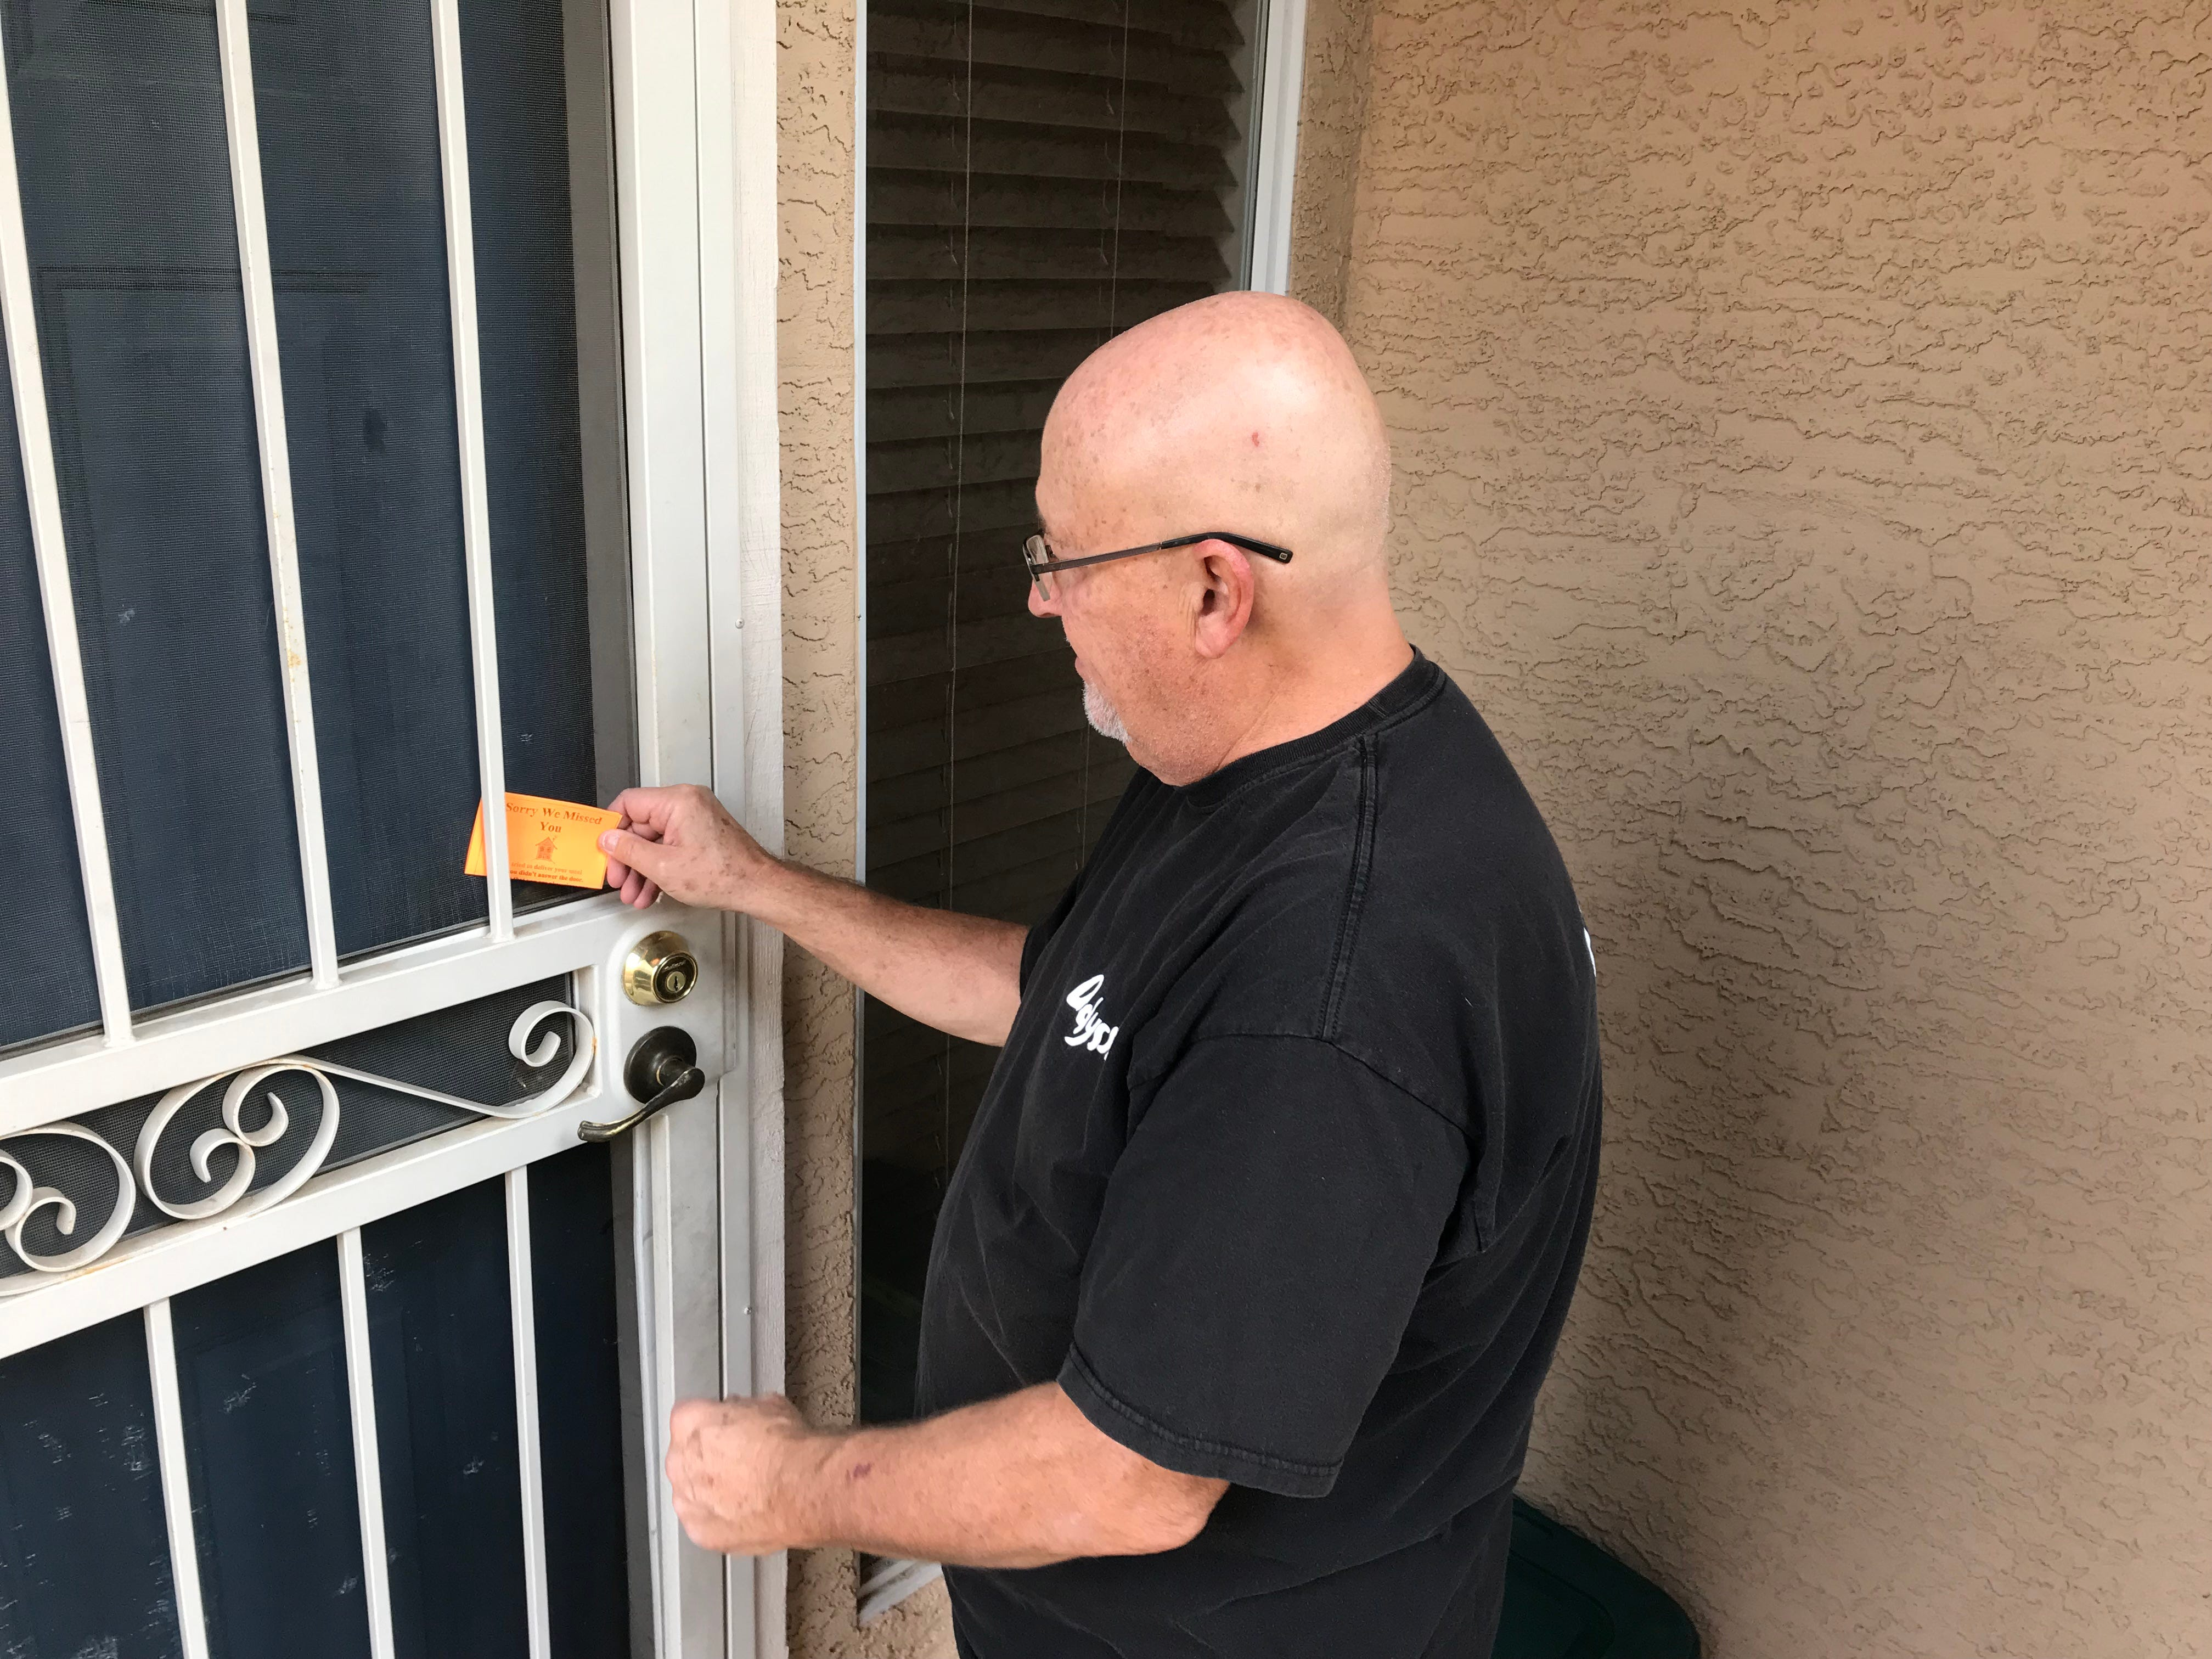 """Dennis O'Melia leaves an """"I'm sorry we missed you"""" slip. Clients typically inform Meals on Wheels if they won't be home, but that's not always possible in some cases."""